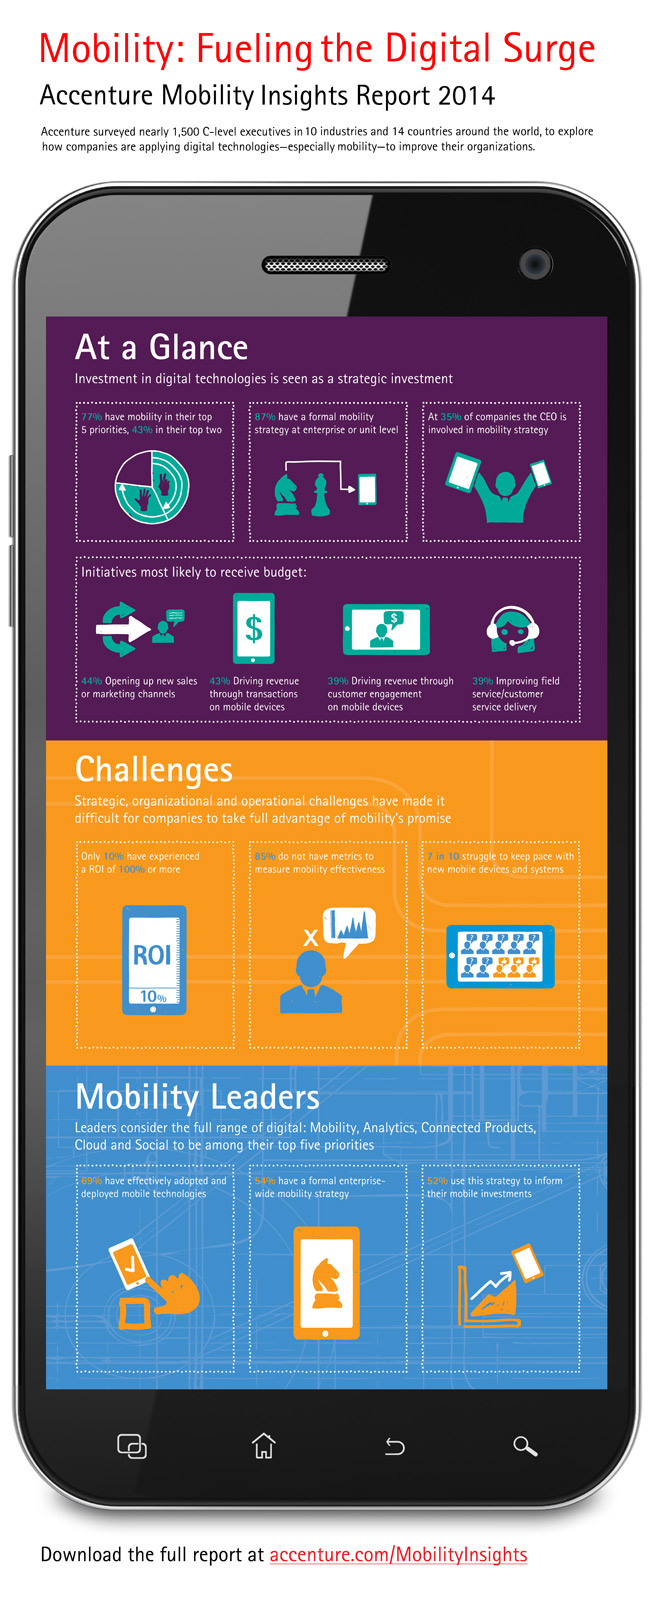 Report Shows Mobility is 'Fueling the Digital Surge'